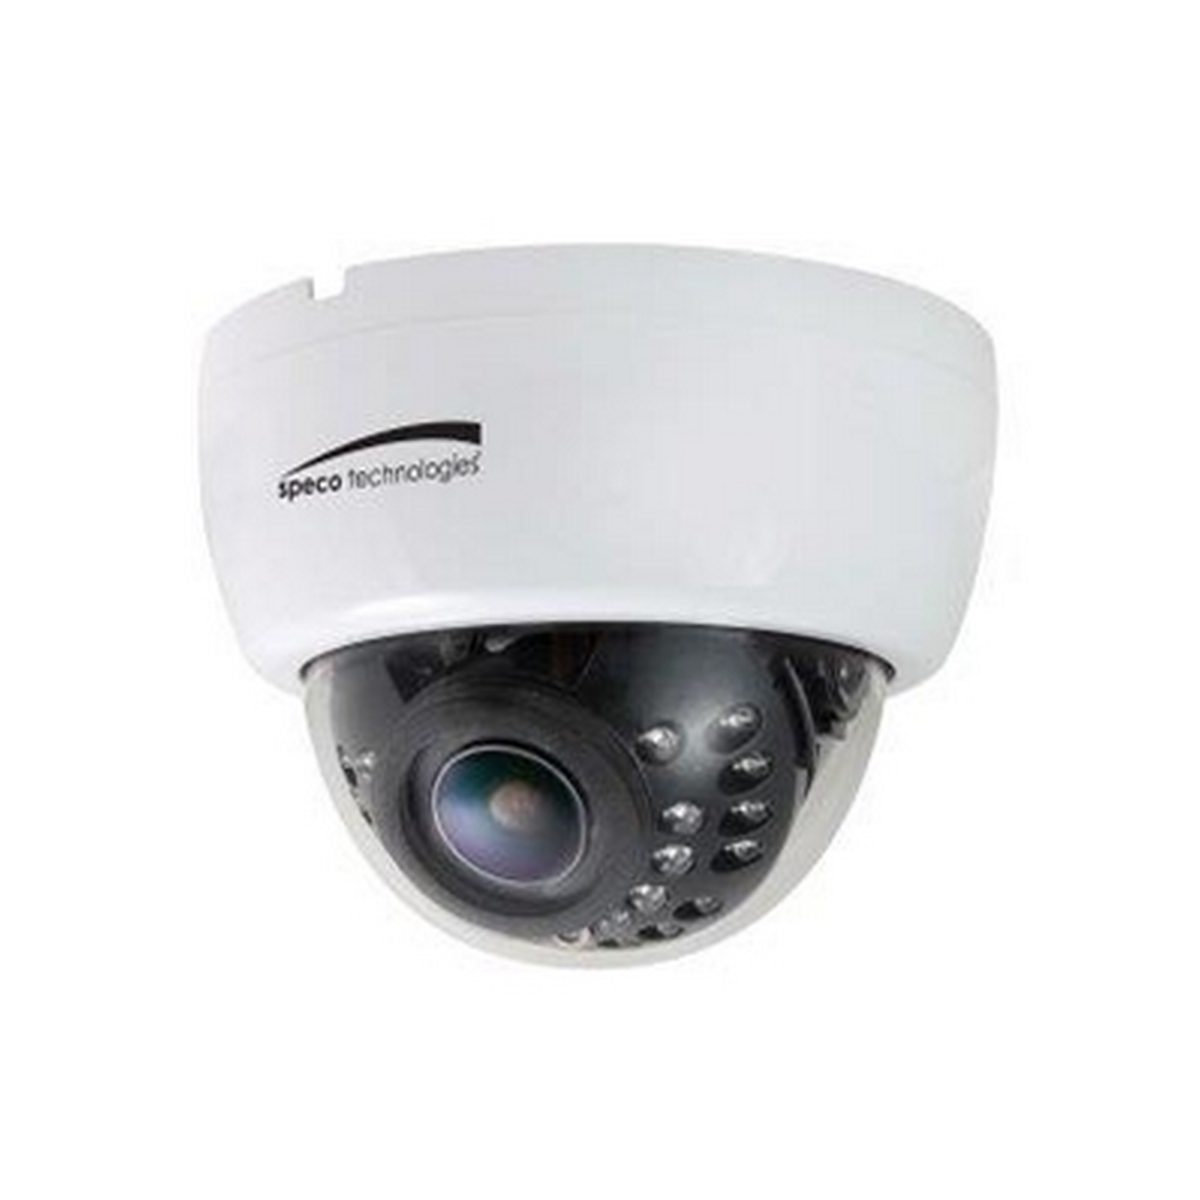 Speco HLED33D1W  960H Dual Voltage Indoor Dome Camera with Built-In IR LEDs, 2.8-12mm Lens, White Housing